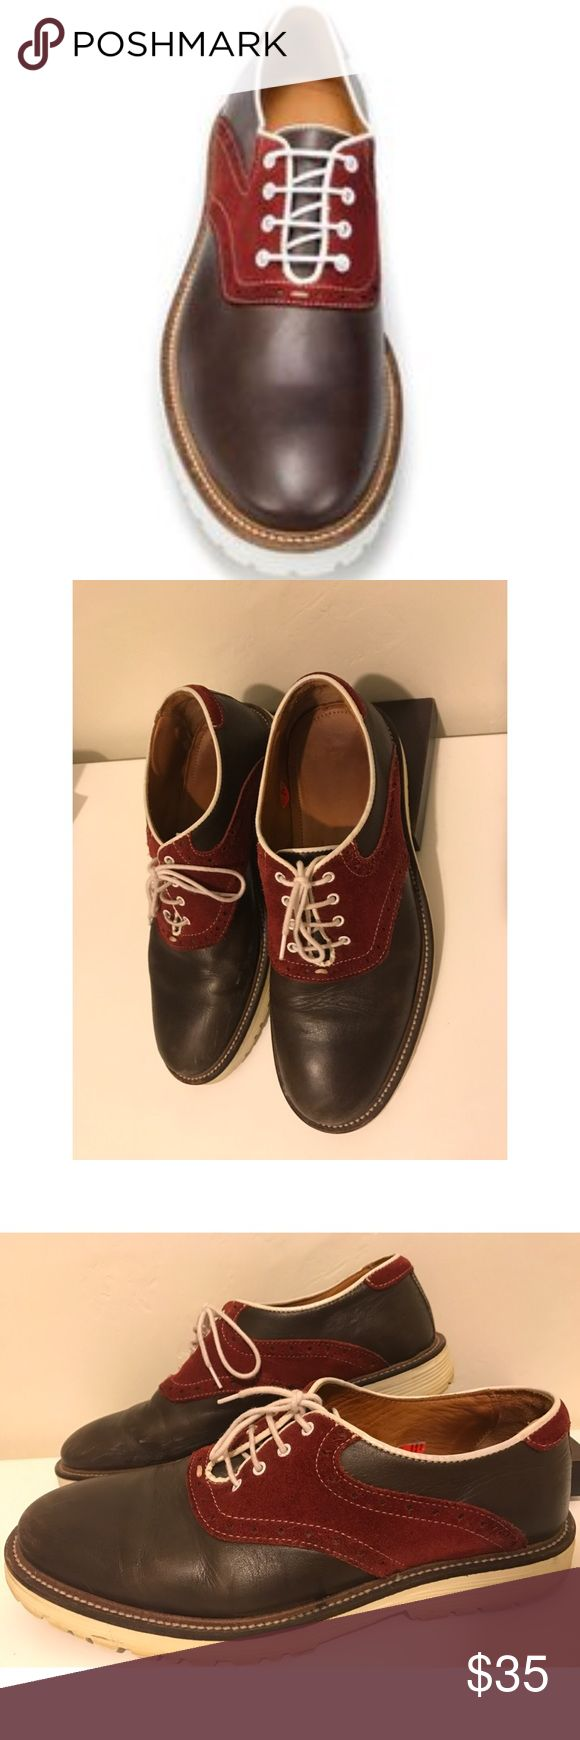 Zara Man Combo Red Suede & Brown Leather Oxfords Worn a handful of times Zara Man Oxfords. High end red Suede and real leather combo. Size 40 Euro, 7 US. Made in Portugal. Minor scuffs on the toe and the inside of the right shoe, as pictured. Priced accordingly. Zara Shoes Oxfords & Derbys